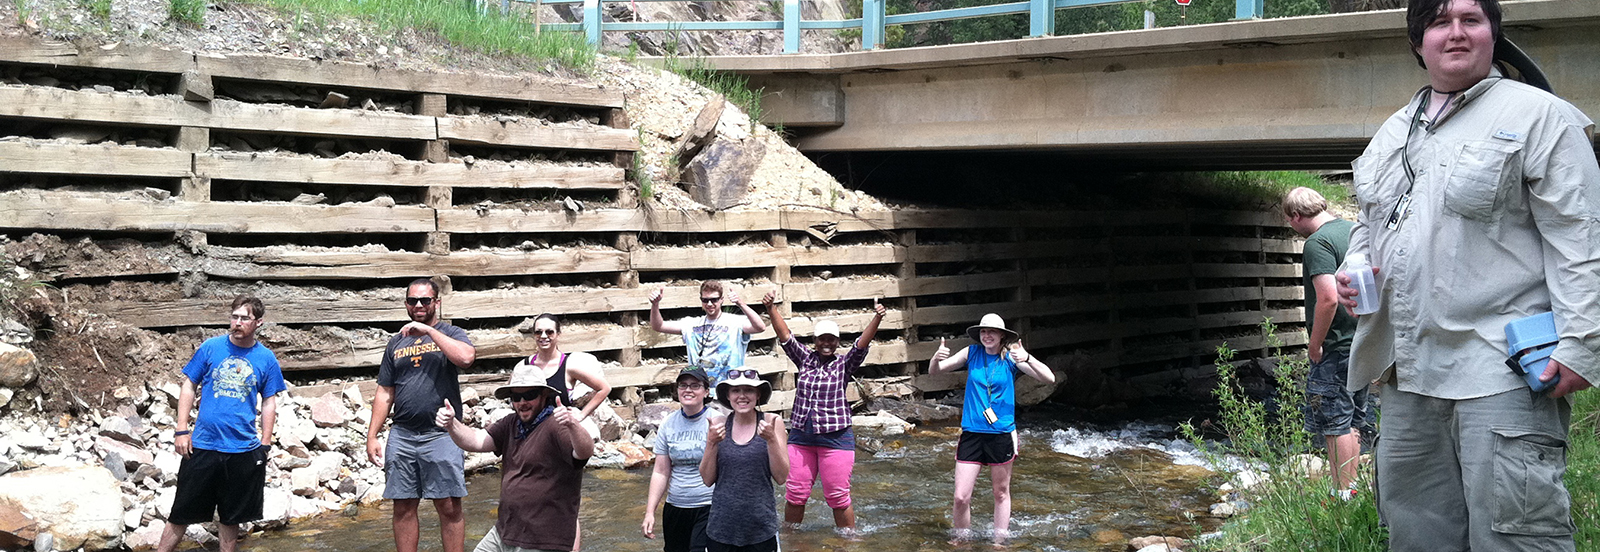 ESCI 4622, Geology Field Camp, students measuring stream discharge and cooling off at Lead, South Dakota.